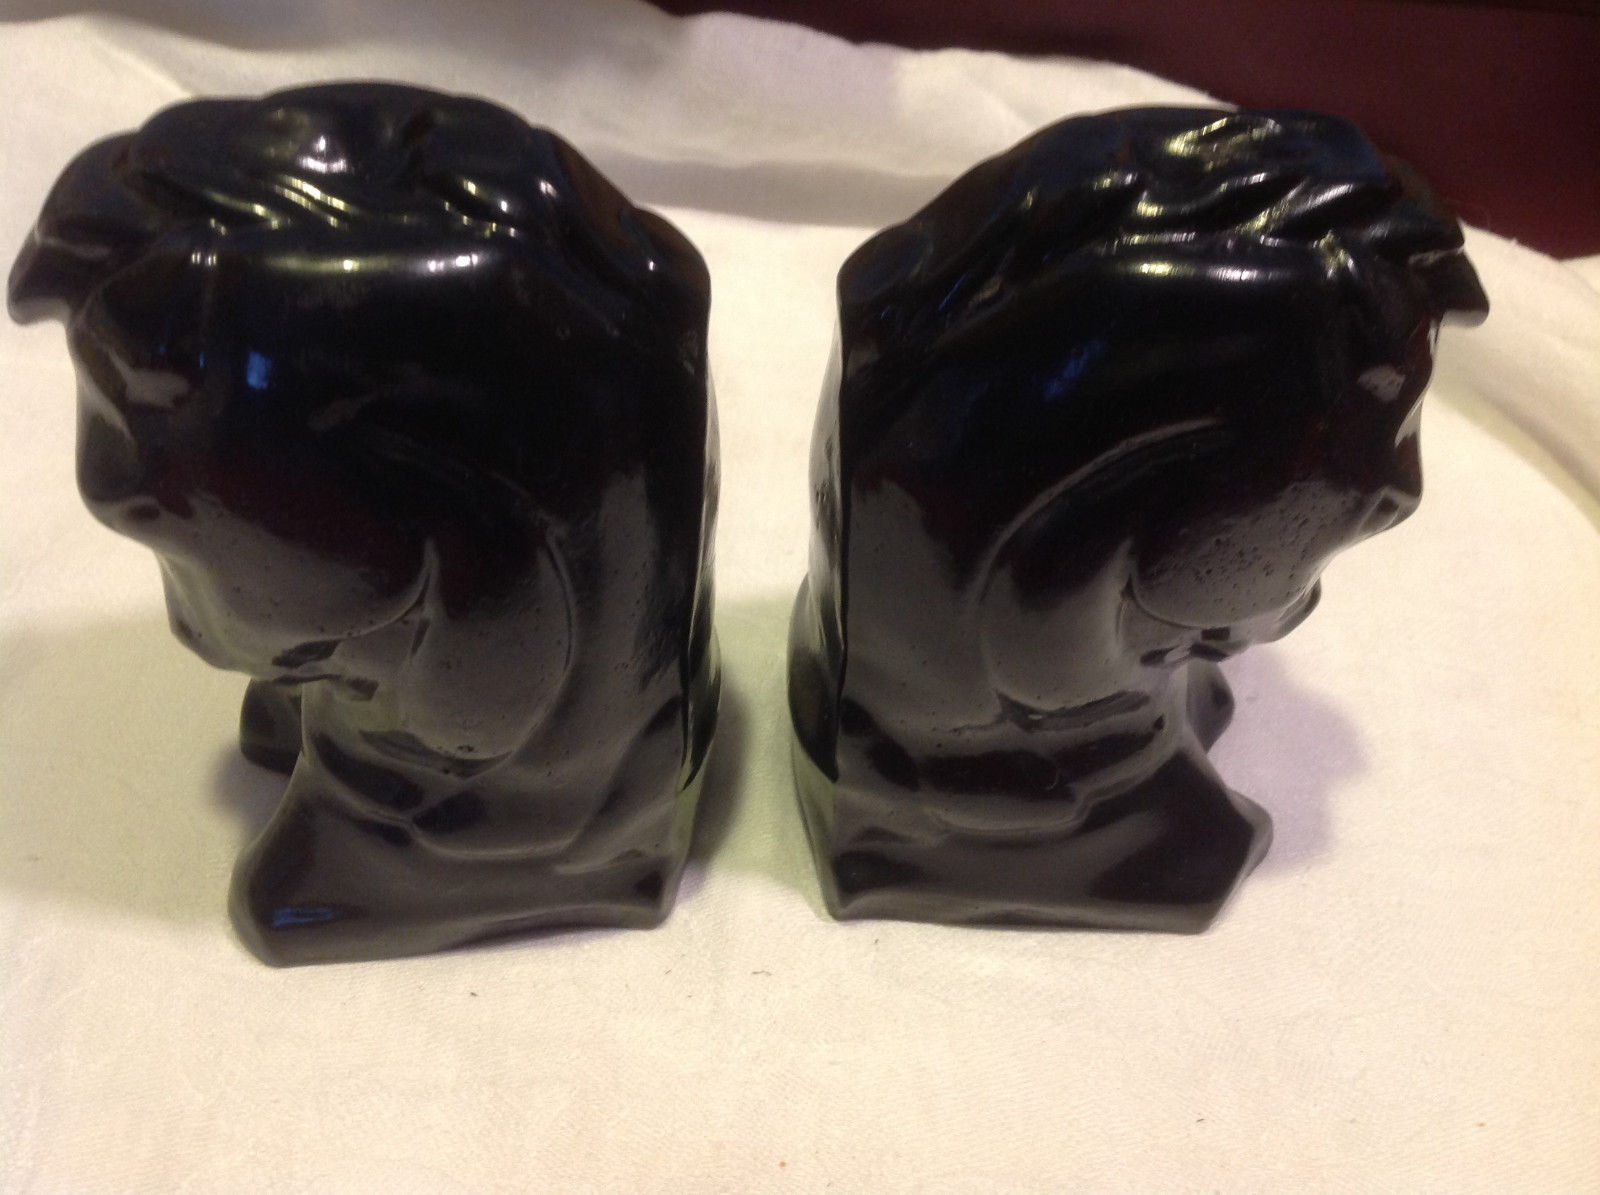 Hand cast black horse head book ends vintage from estate